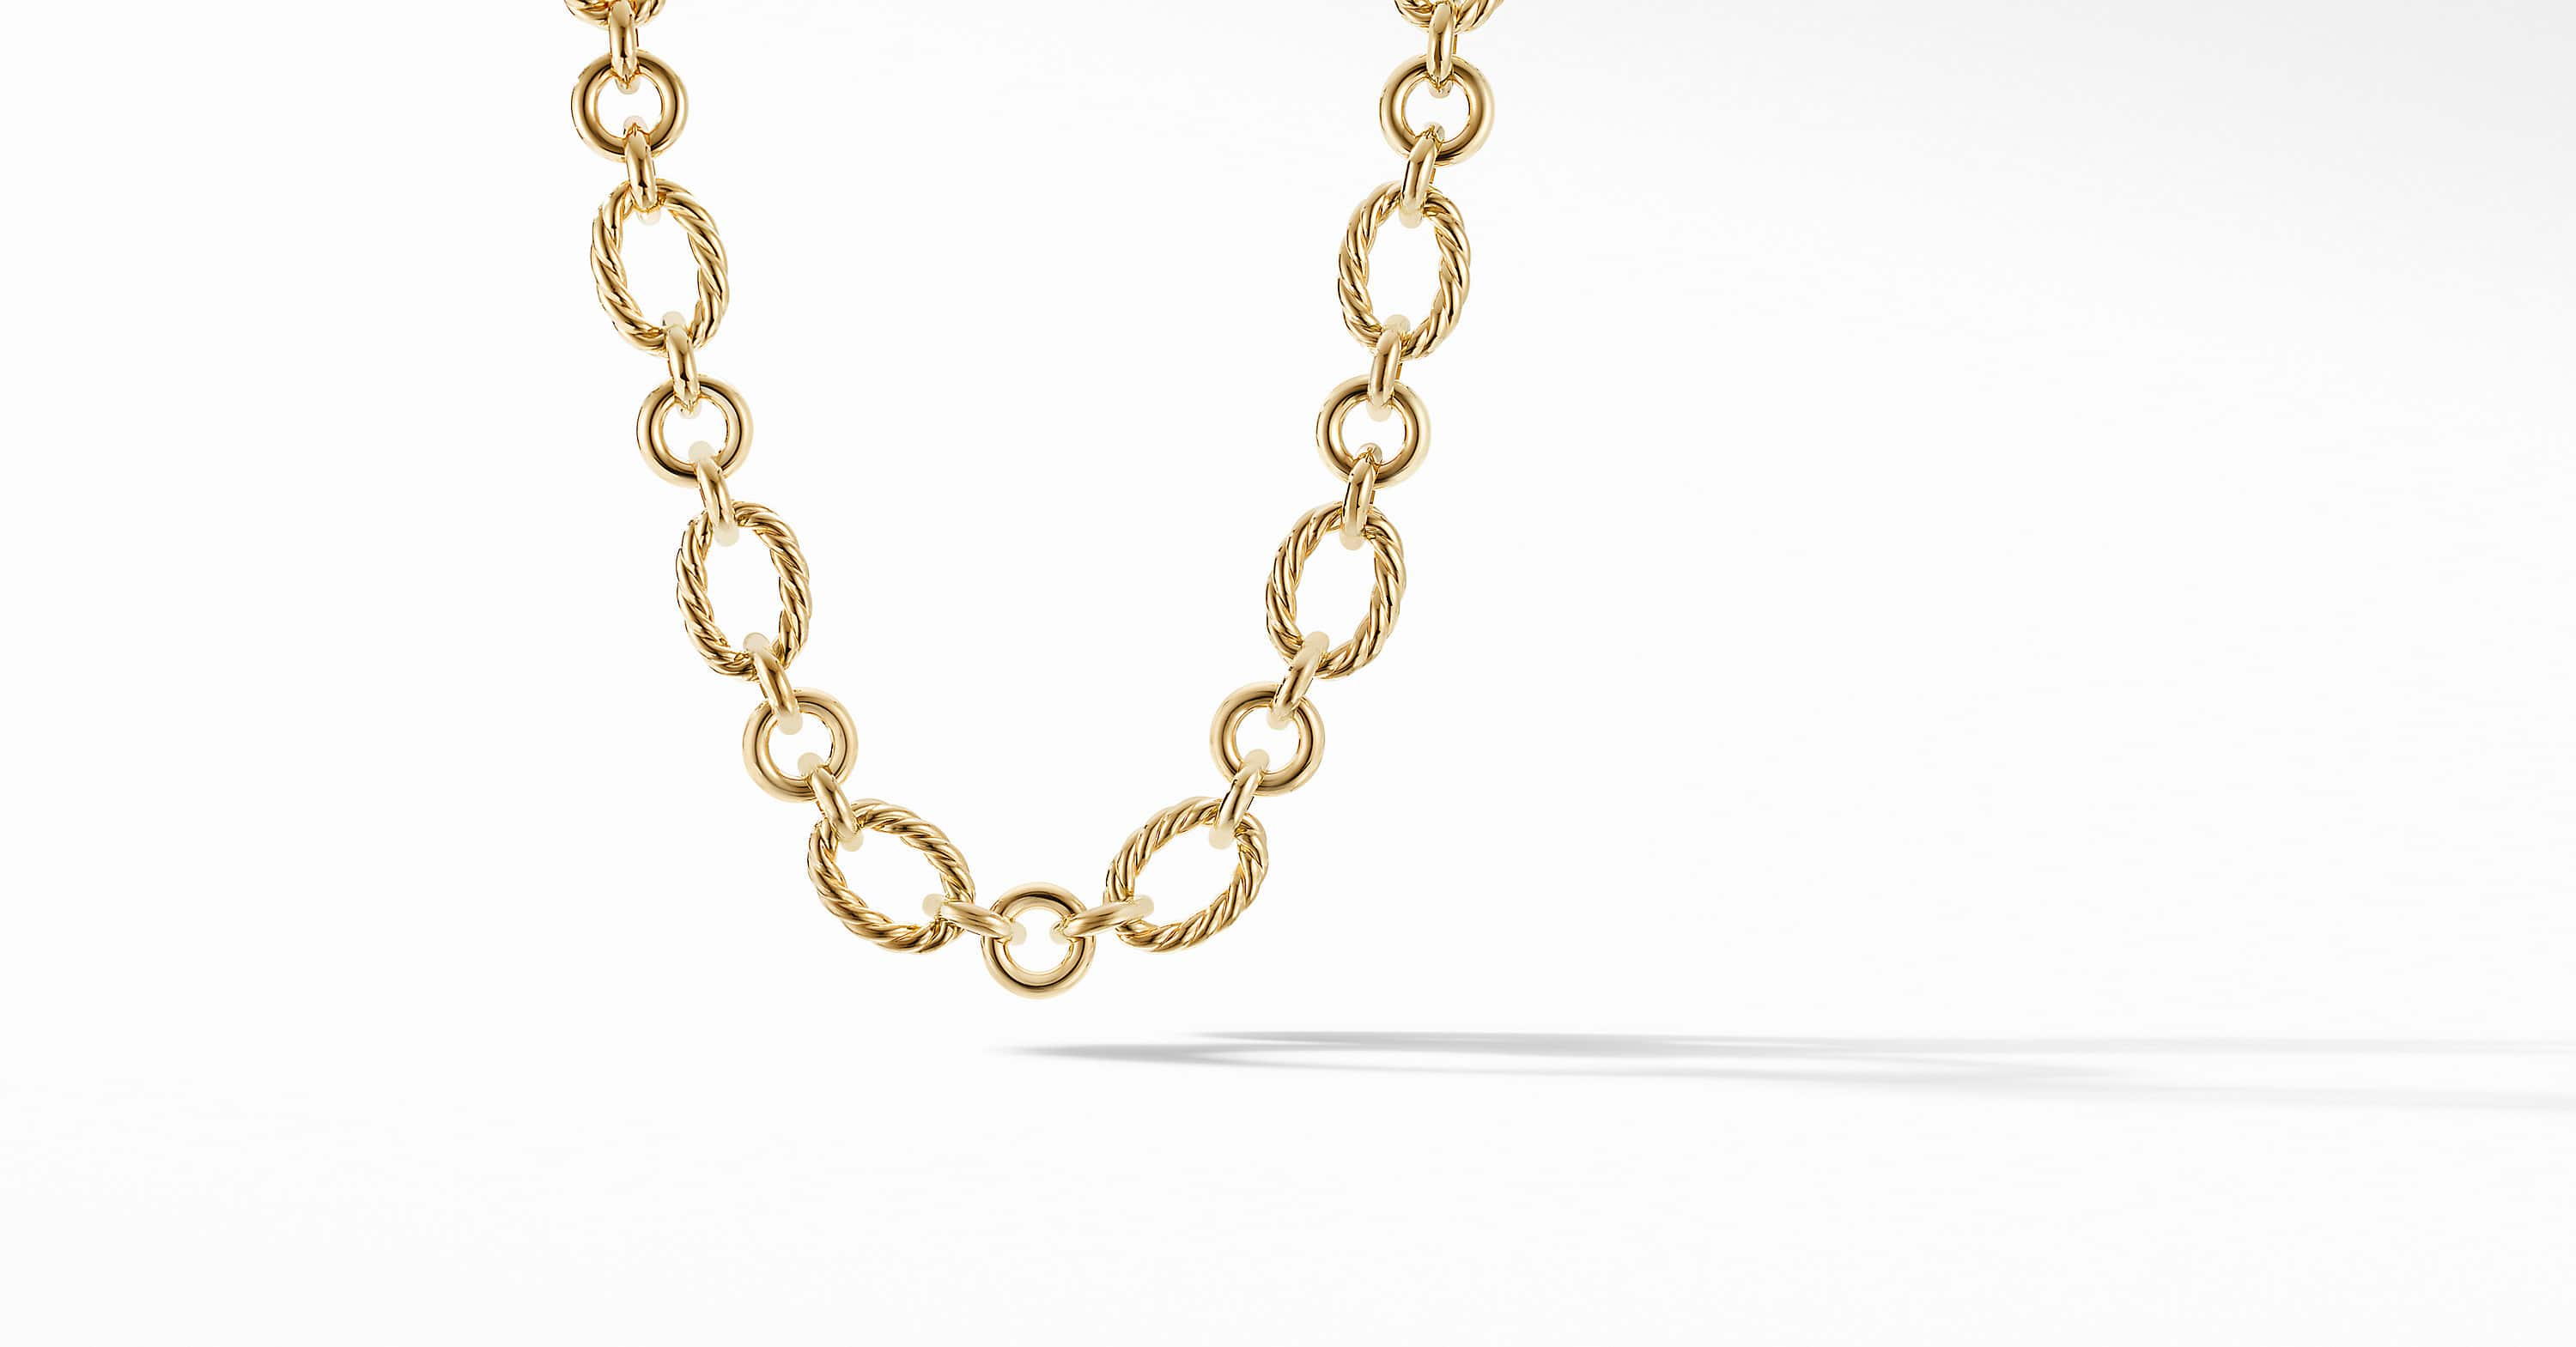 Cable and Smooth Chain Link in 18K Yellow Gold, 20mm